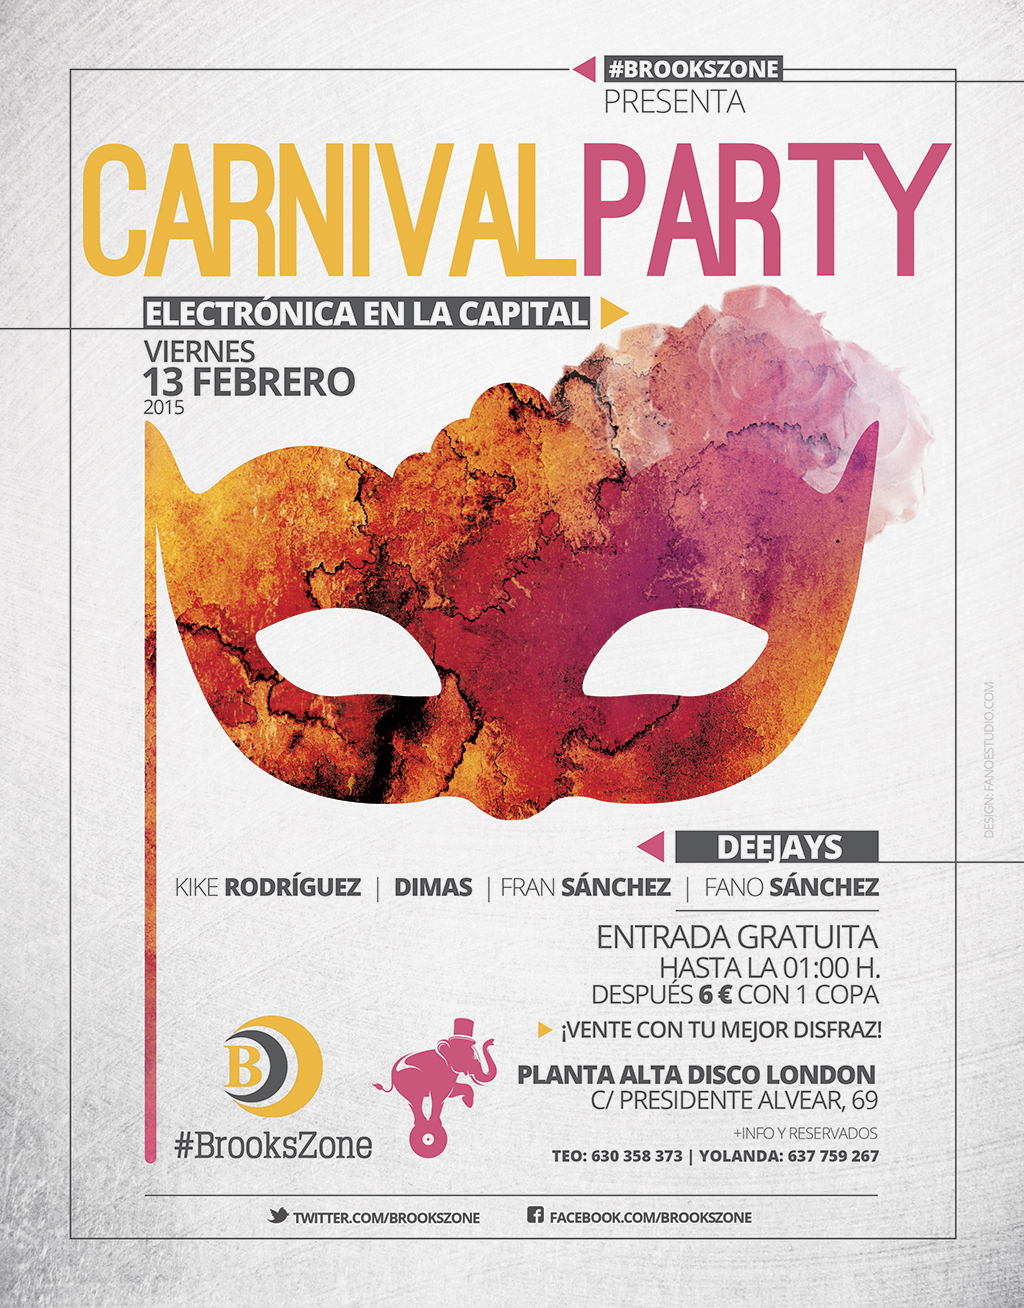 Carnival Party #BrooksZone 2015